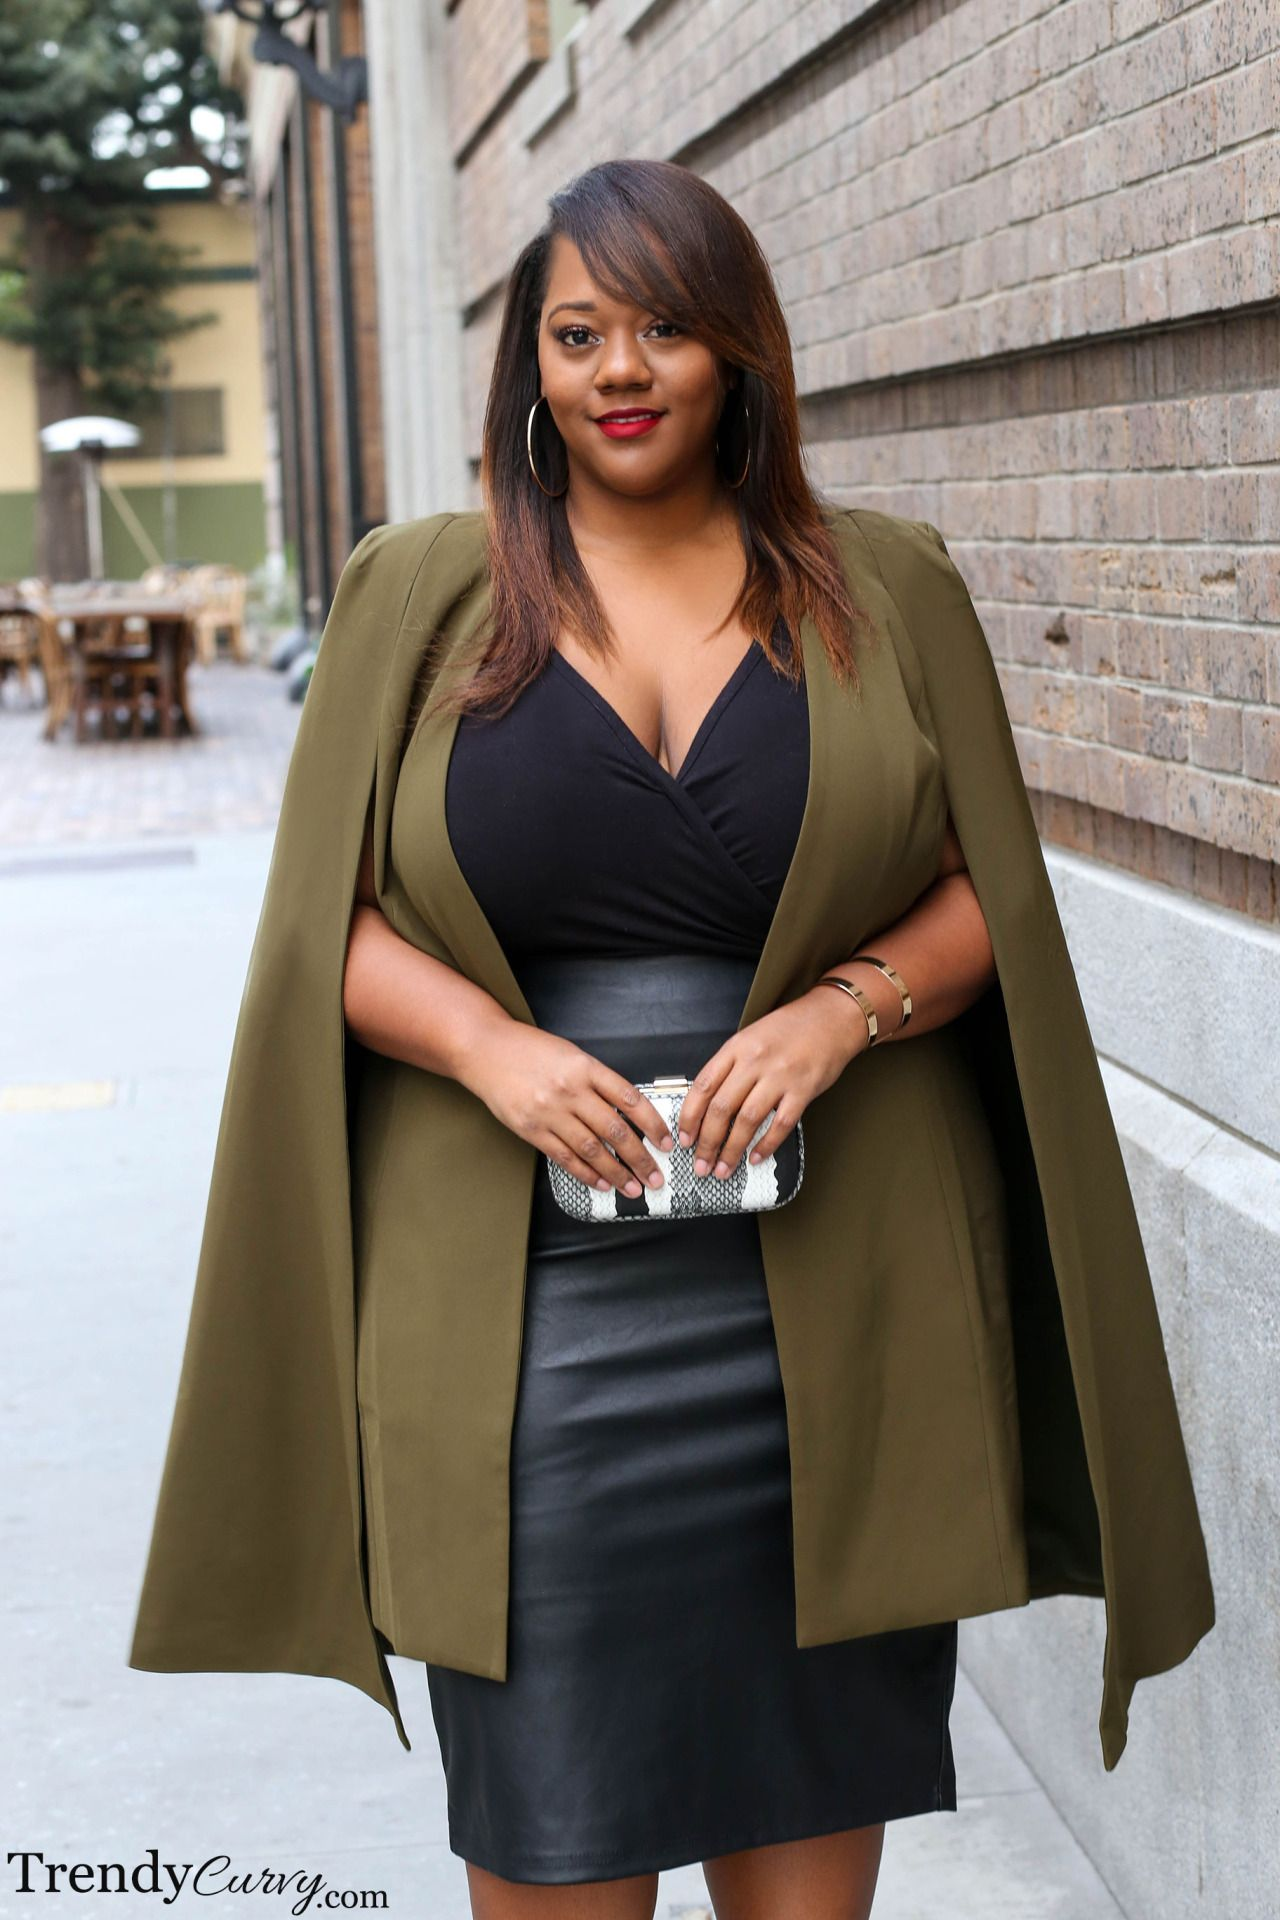 Trendy Curvy | Plus Size Fashion & Style Blog | wardrobe | Fashion ...